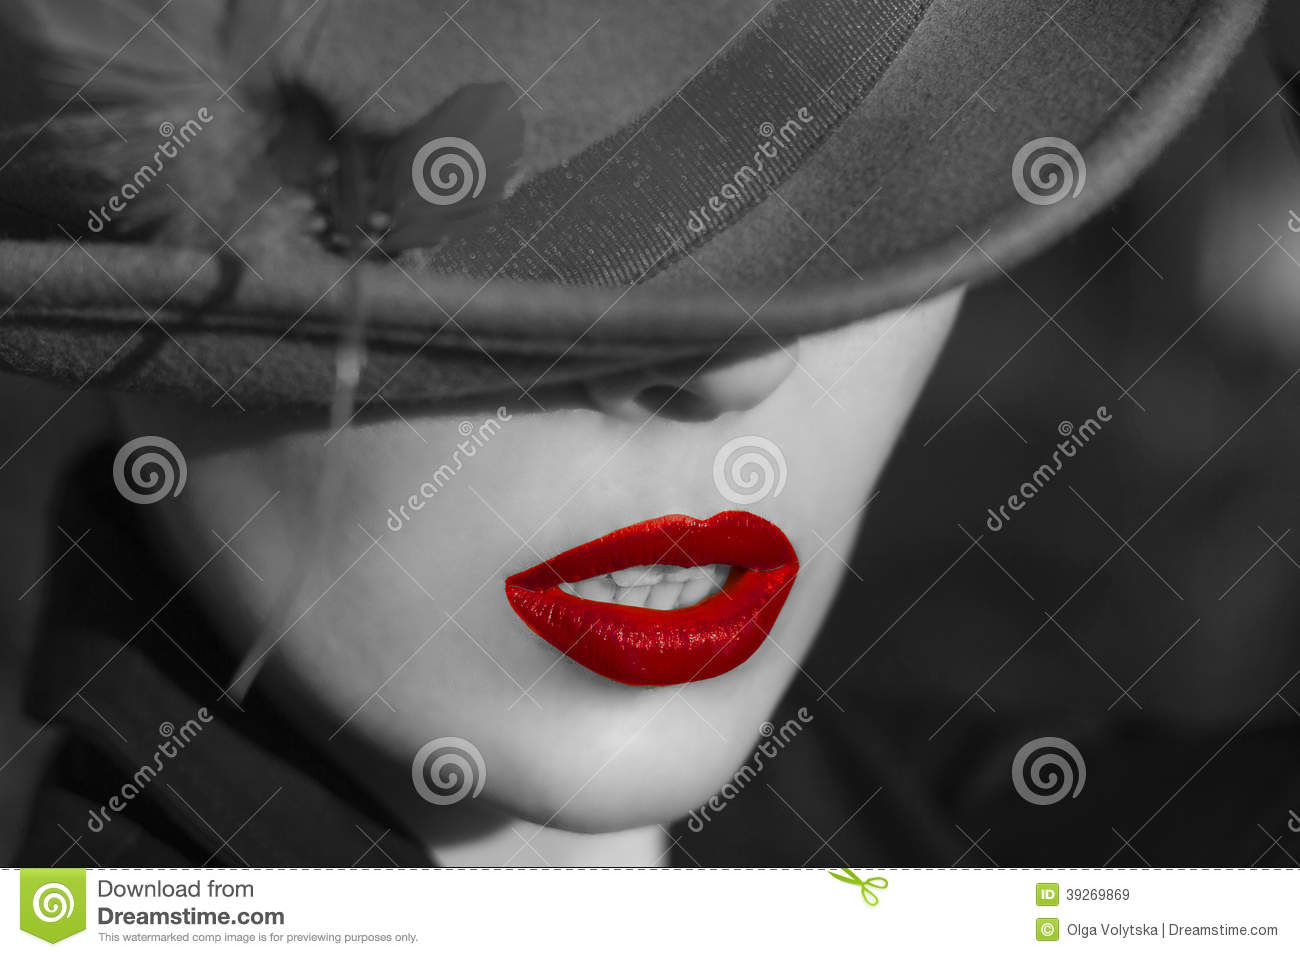 ac17dfe9d08 Woman in hat. Red lips. Fashion close-up portrait of young beautiful woman